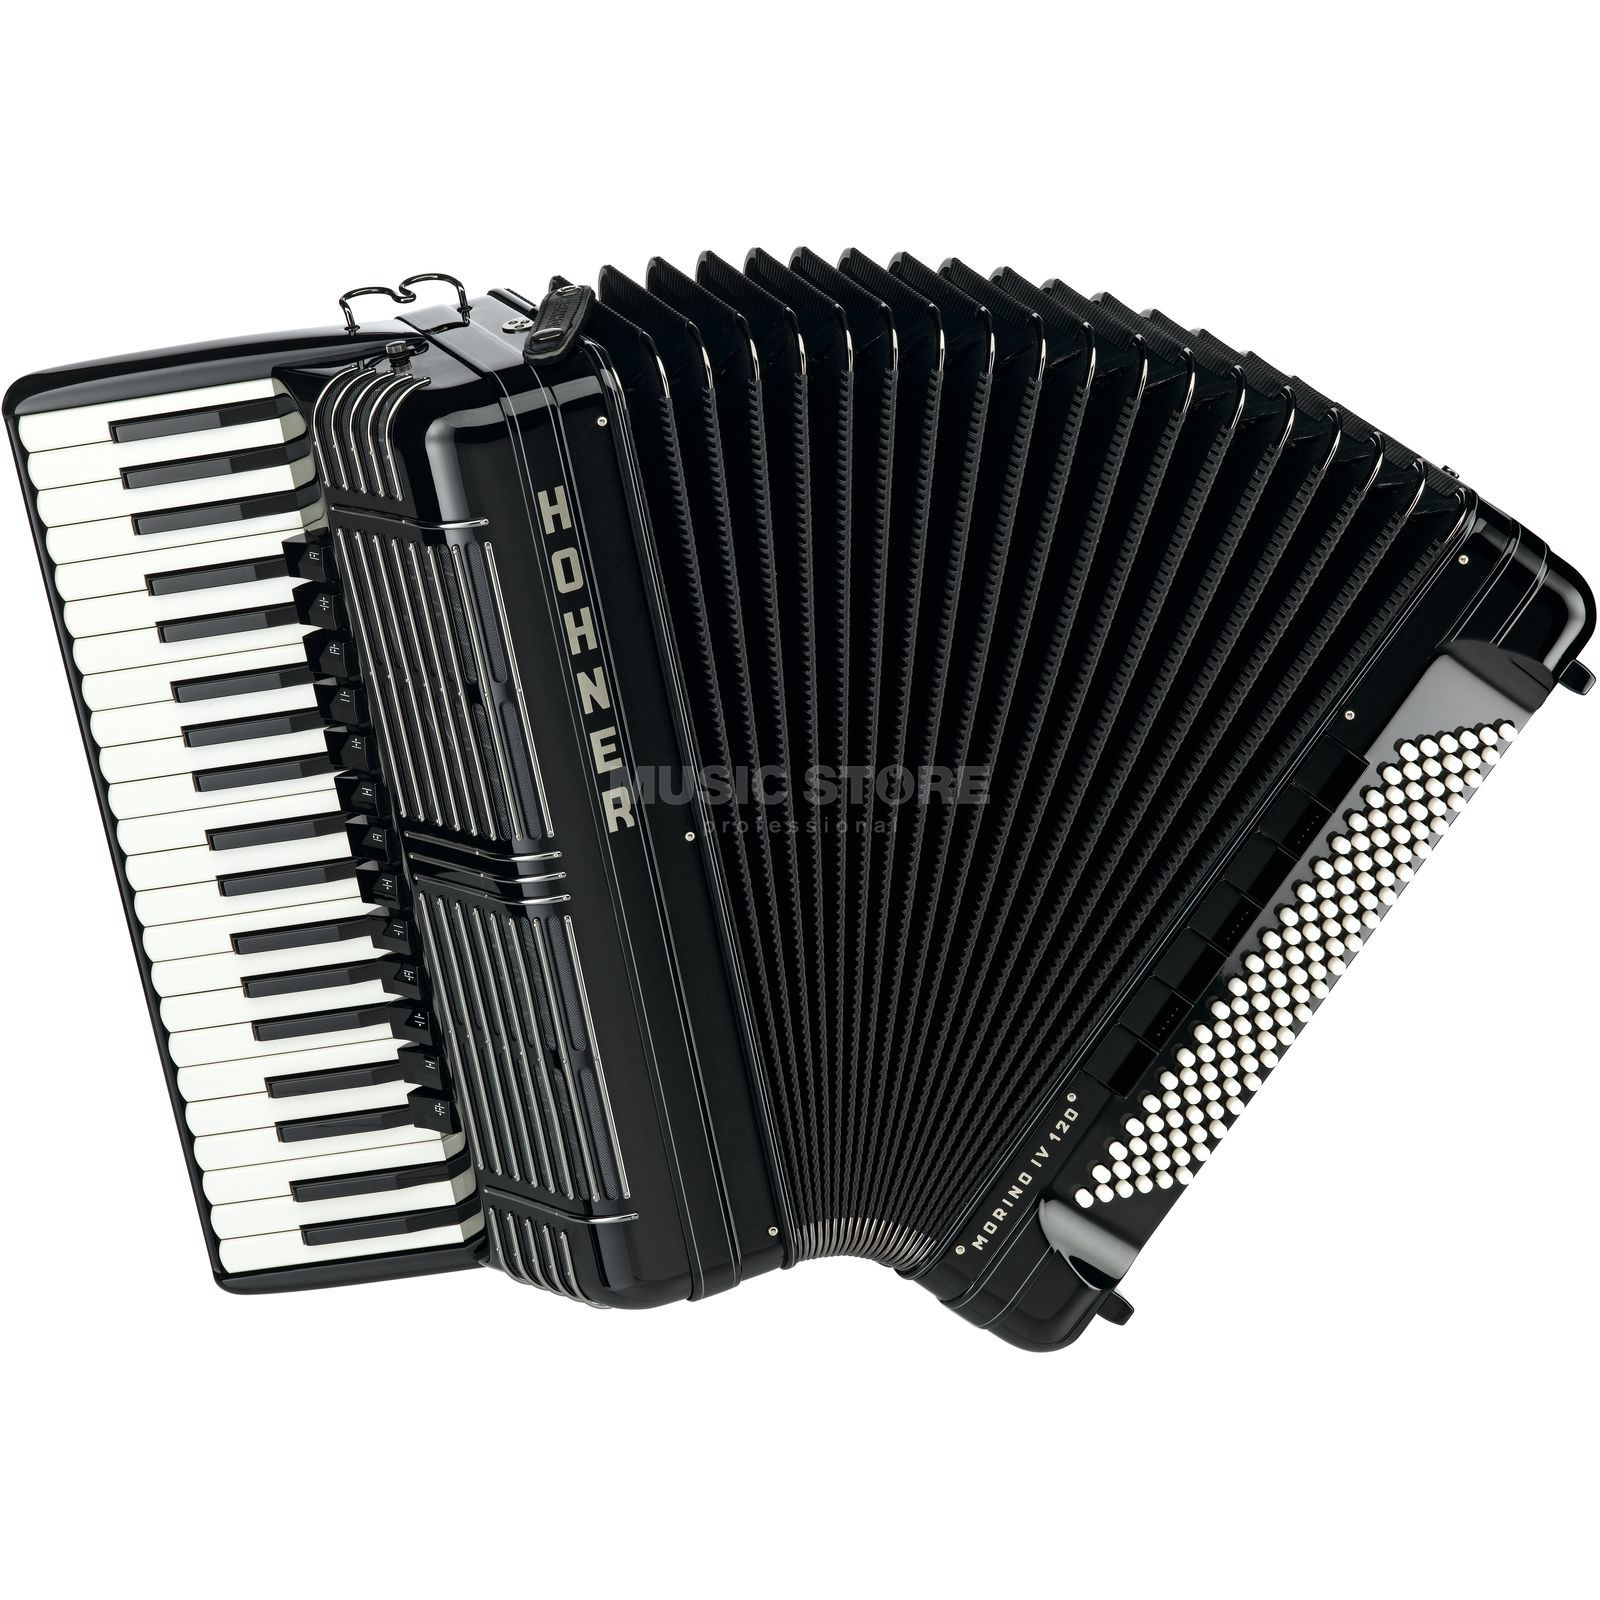 Hohner Piano-Accordion Morino + IV 120 bass, IV voices, Black Produktbillede